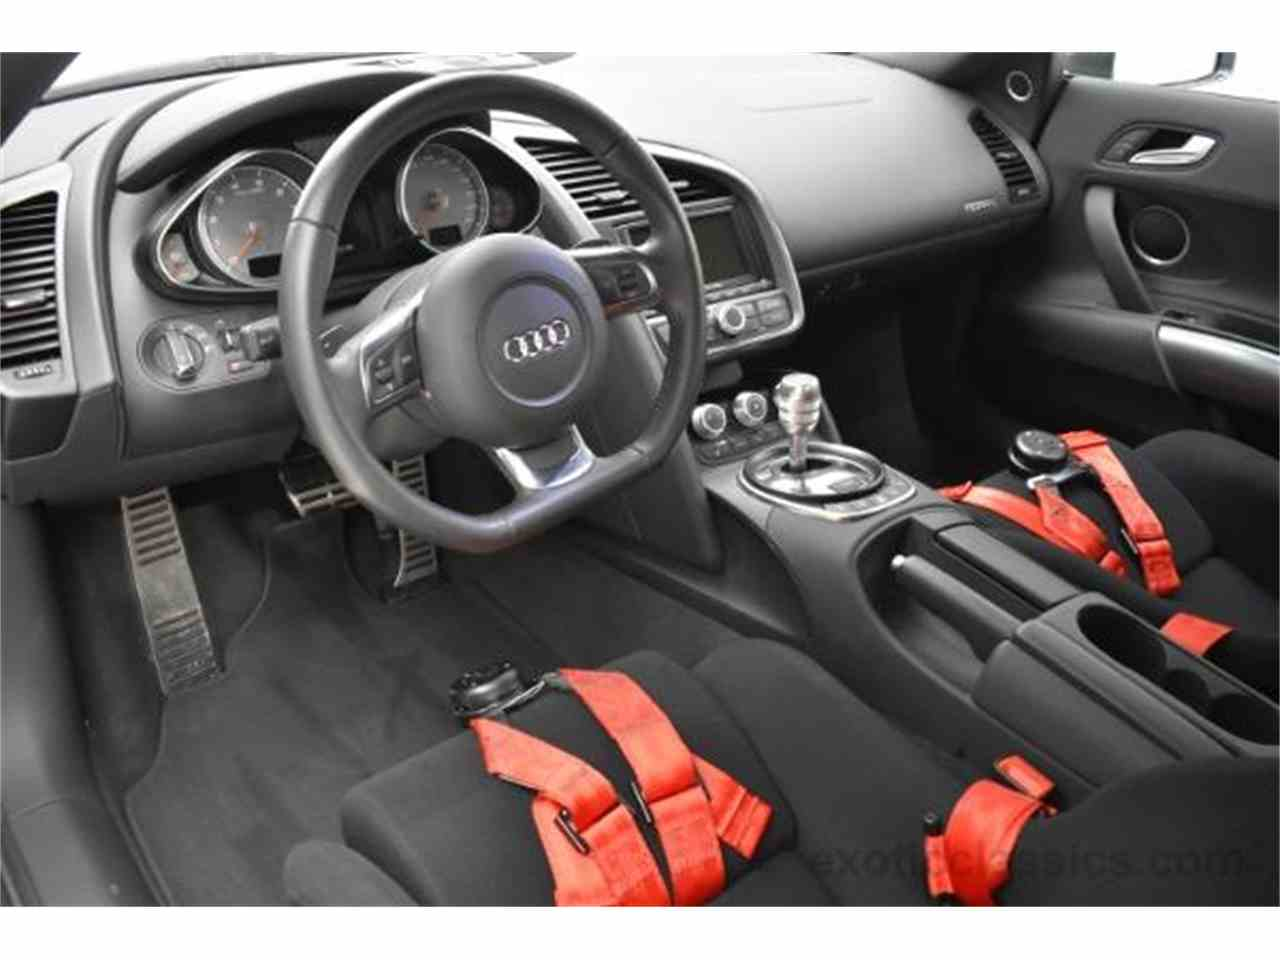 Large Picture of '09 Audi R8 located in New York - $84,888.00 Offered by Champion Motors - KO6N